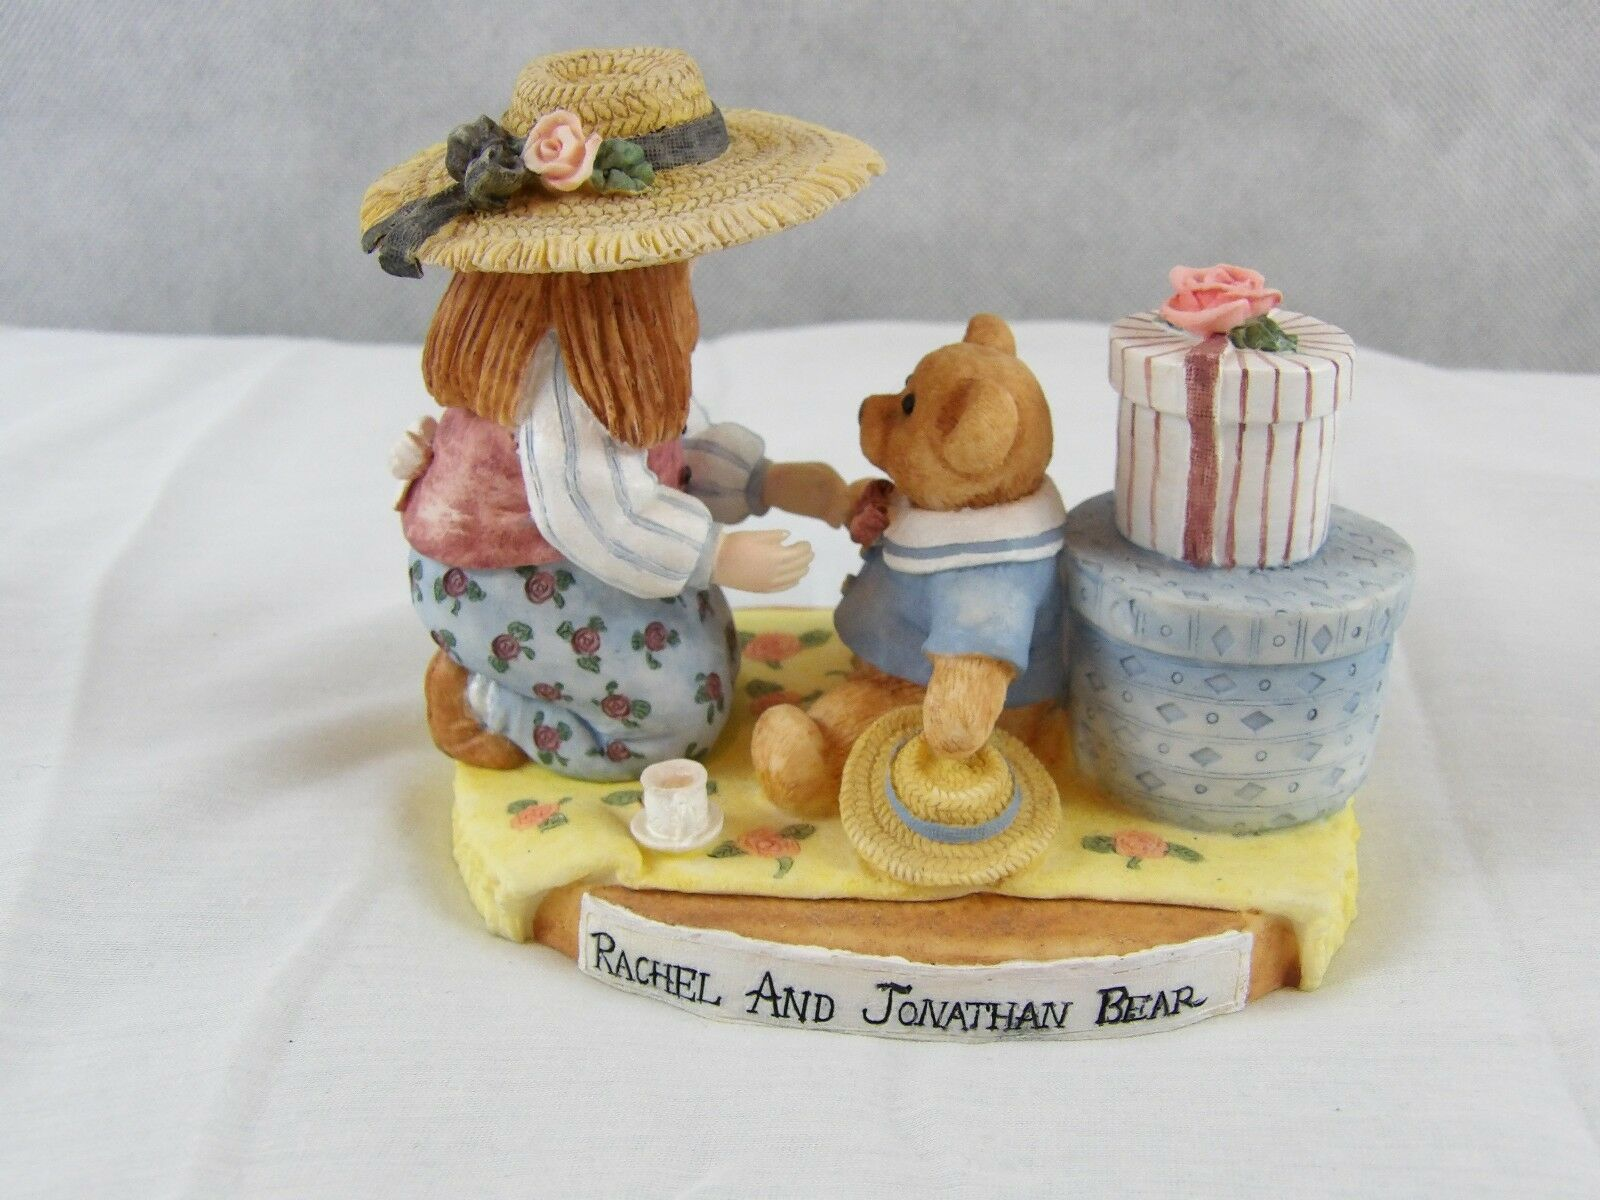 3 - Linda Grayson Figurines Sarah, Rebecca & Rachel - Tea Party Teddies Bears